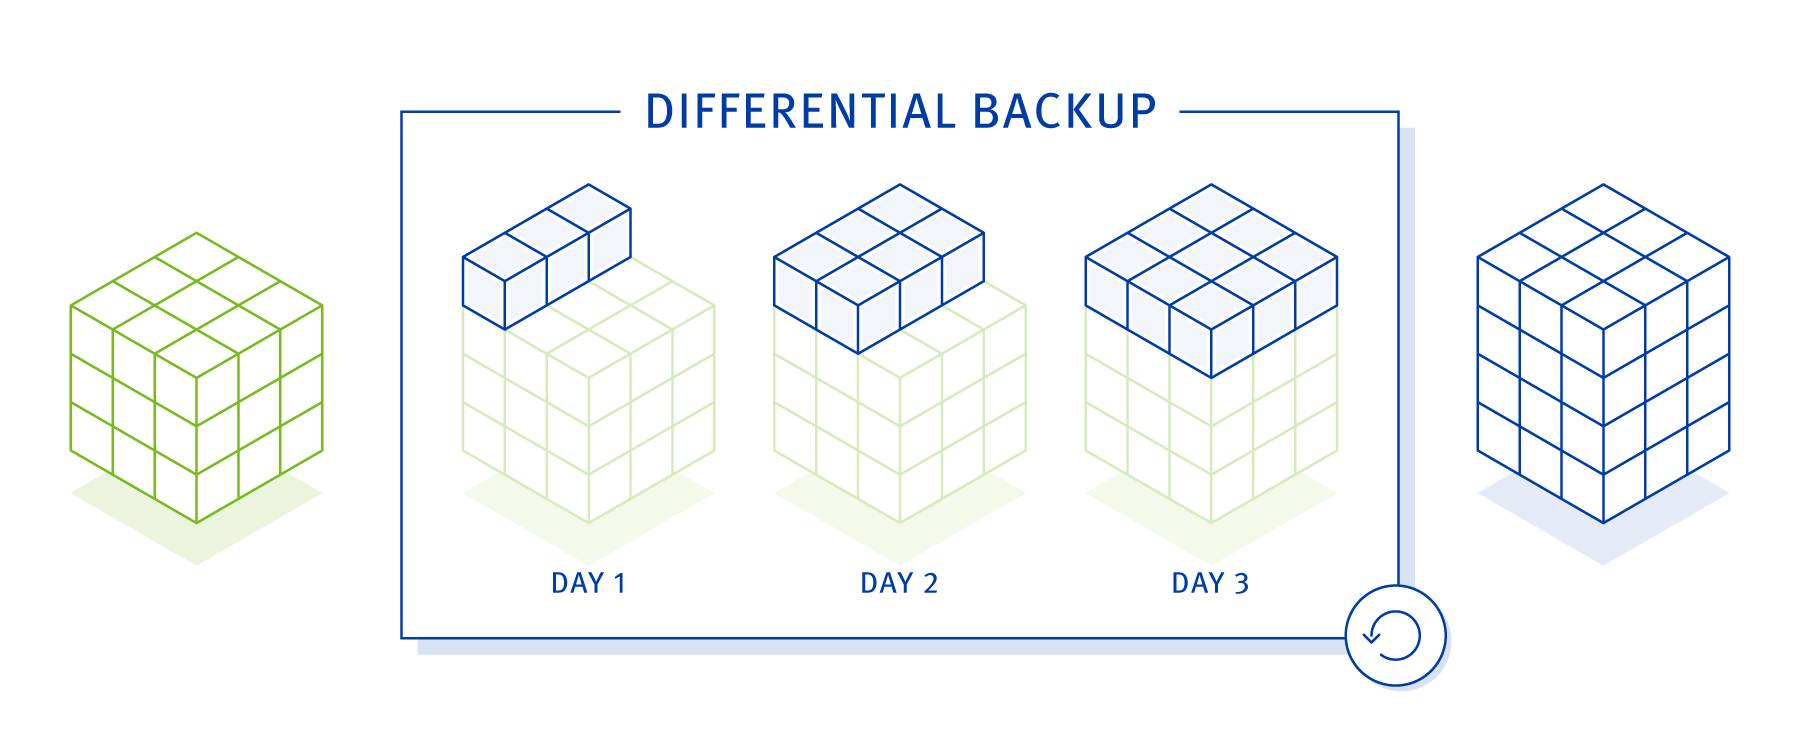 backup strategy - differential backup